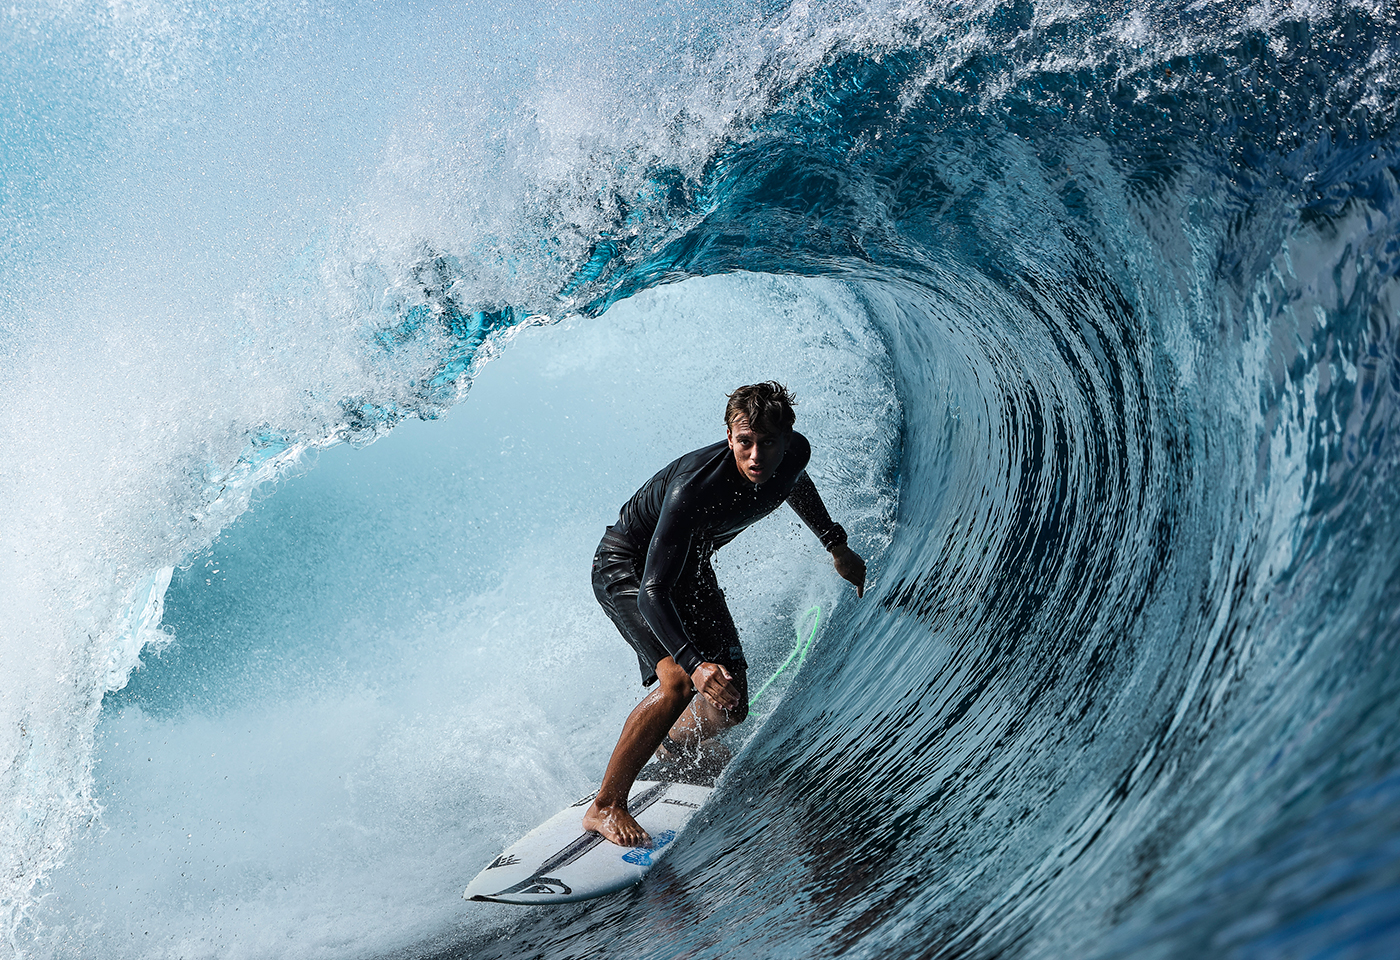 Image of surfing taken with EOS 1D X Mark III